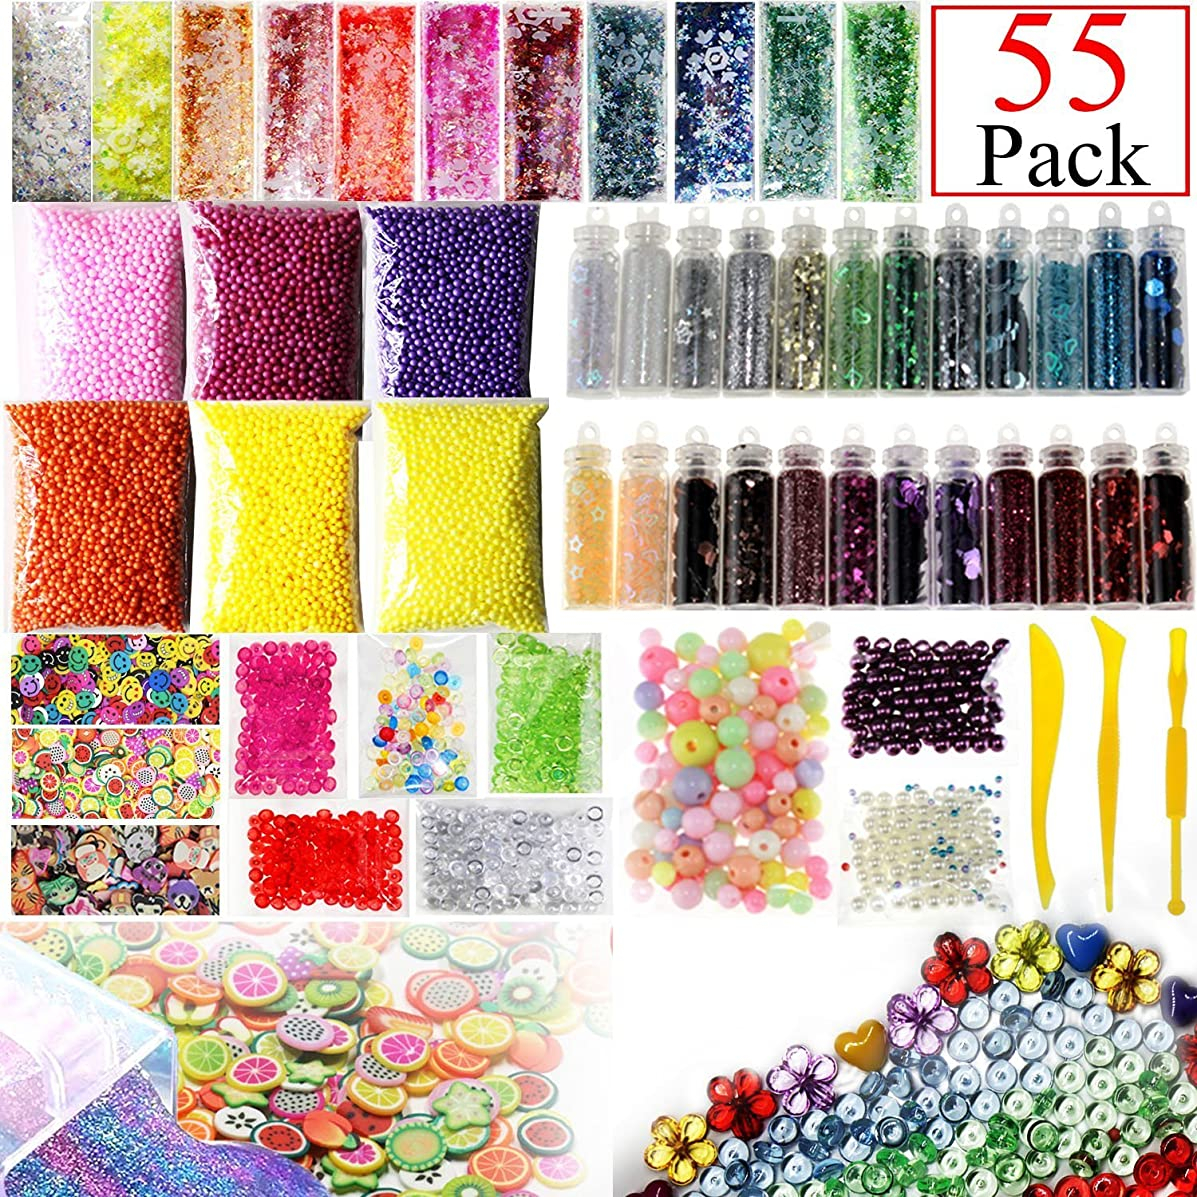 55 Pack Slime Supplies Kit Include Fishbowl beads, Foam Balls, Glitter Jars, Fruit Flower Animal Slices, Pearls, Slime Tools Slime Beads Charms for DIY Slime Making Art Craft Party Decor